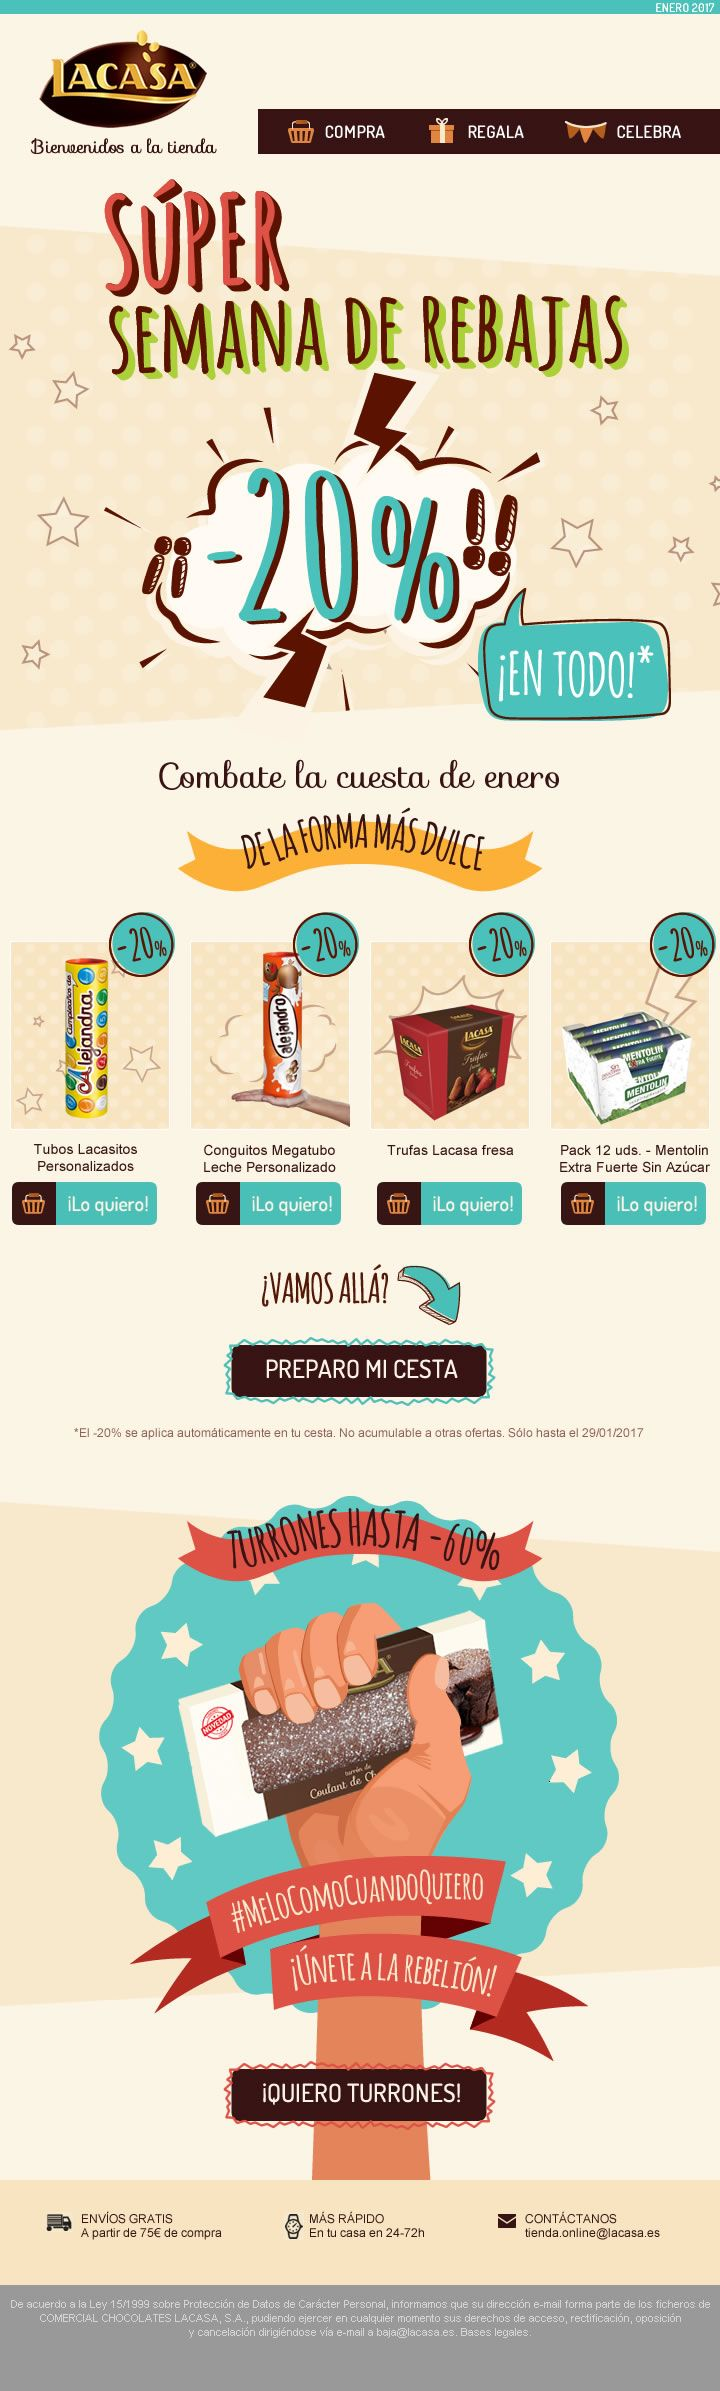 CHOCOLATES LACASA · ONLINE STORE · Once again, the e-commerce store we created for a leading brand has beaten records: more than doubling sales from last year.· How can we help you? · January 2017